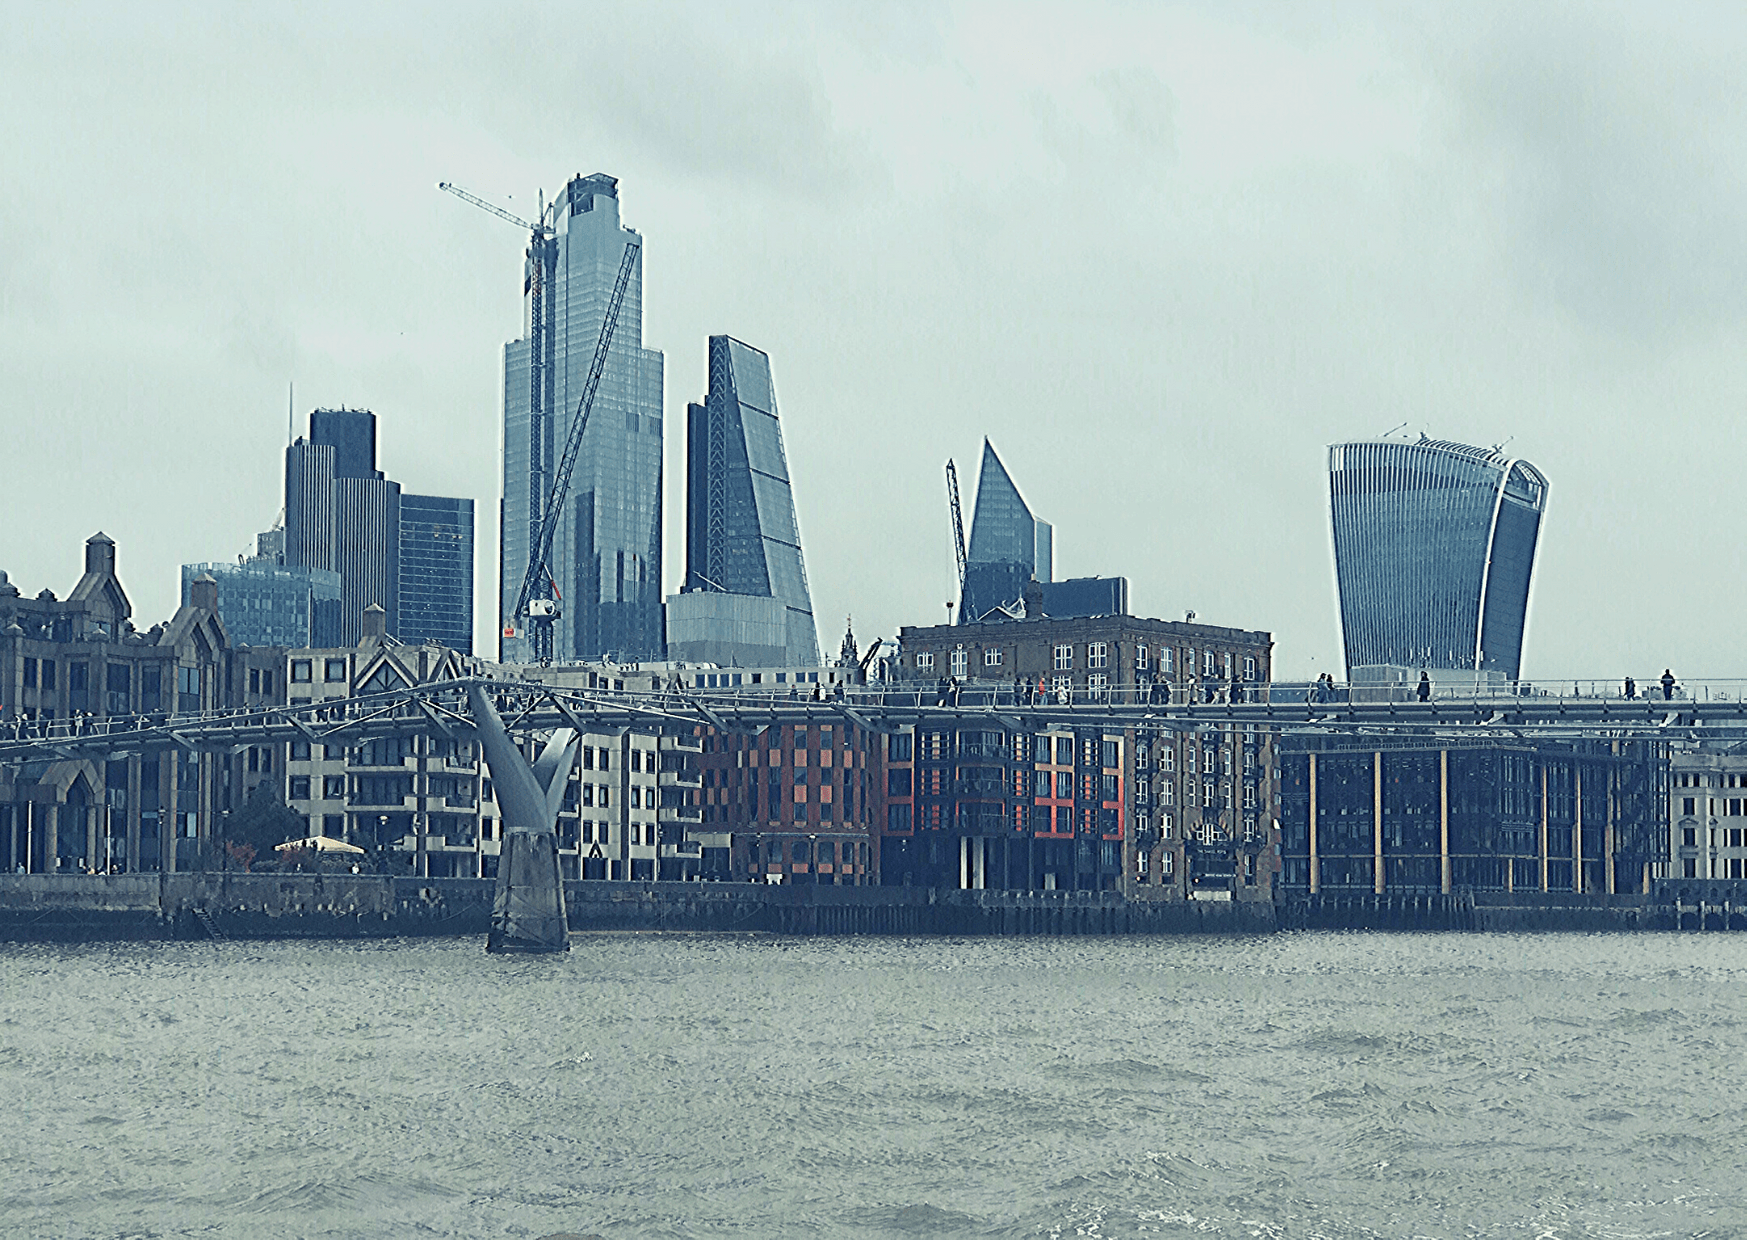 Start day 2 of your three days in London with a small child with a boat trip on the Thames. Here is the view of the London skyline from the public ferries.